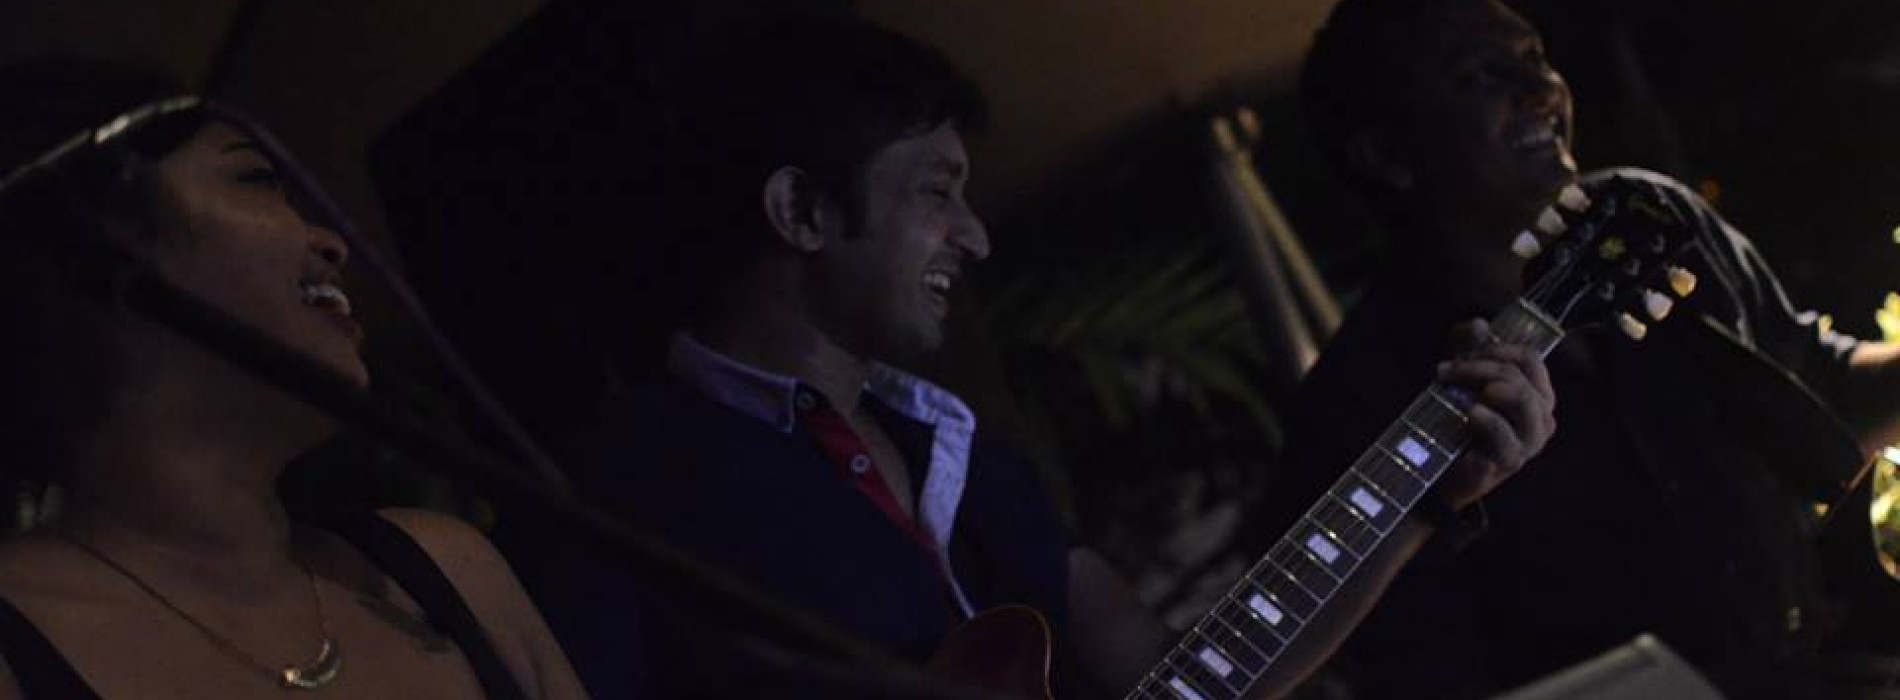 At Last Project – Baby, Give It Up (Cover)